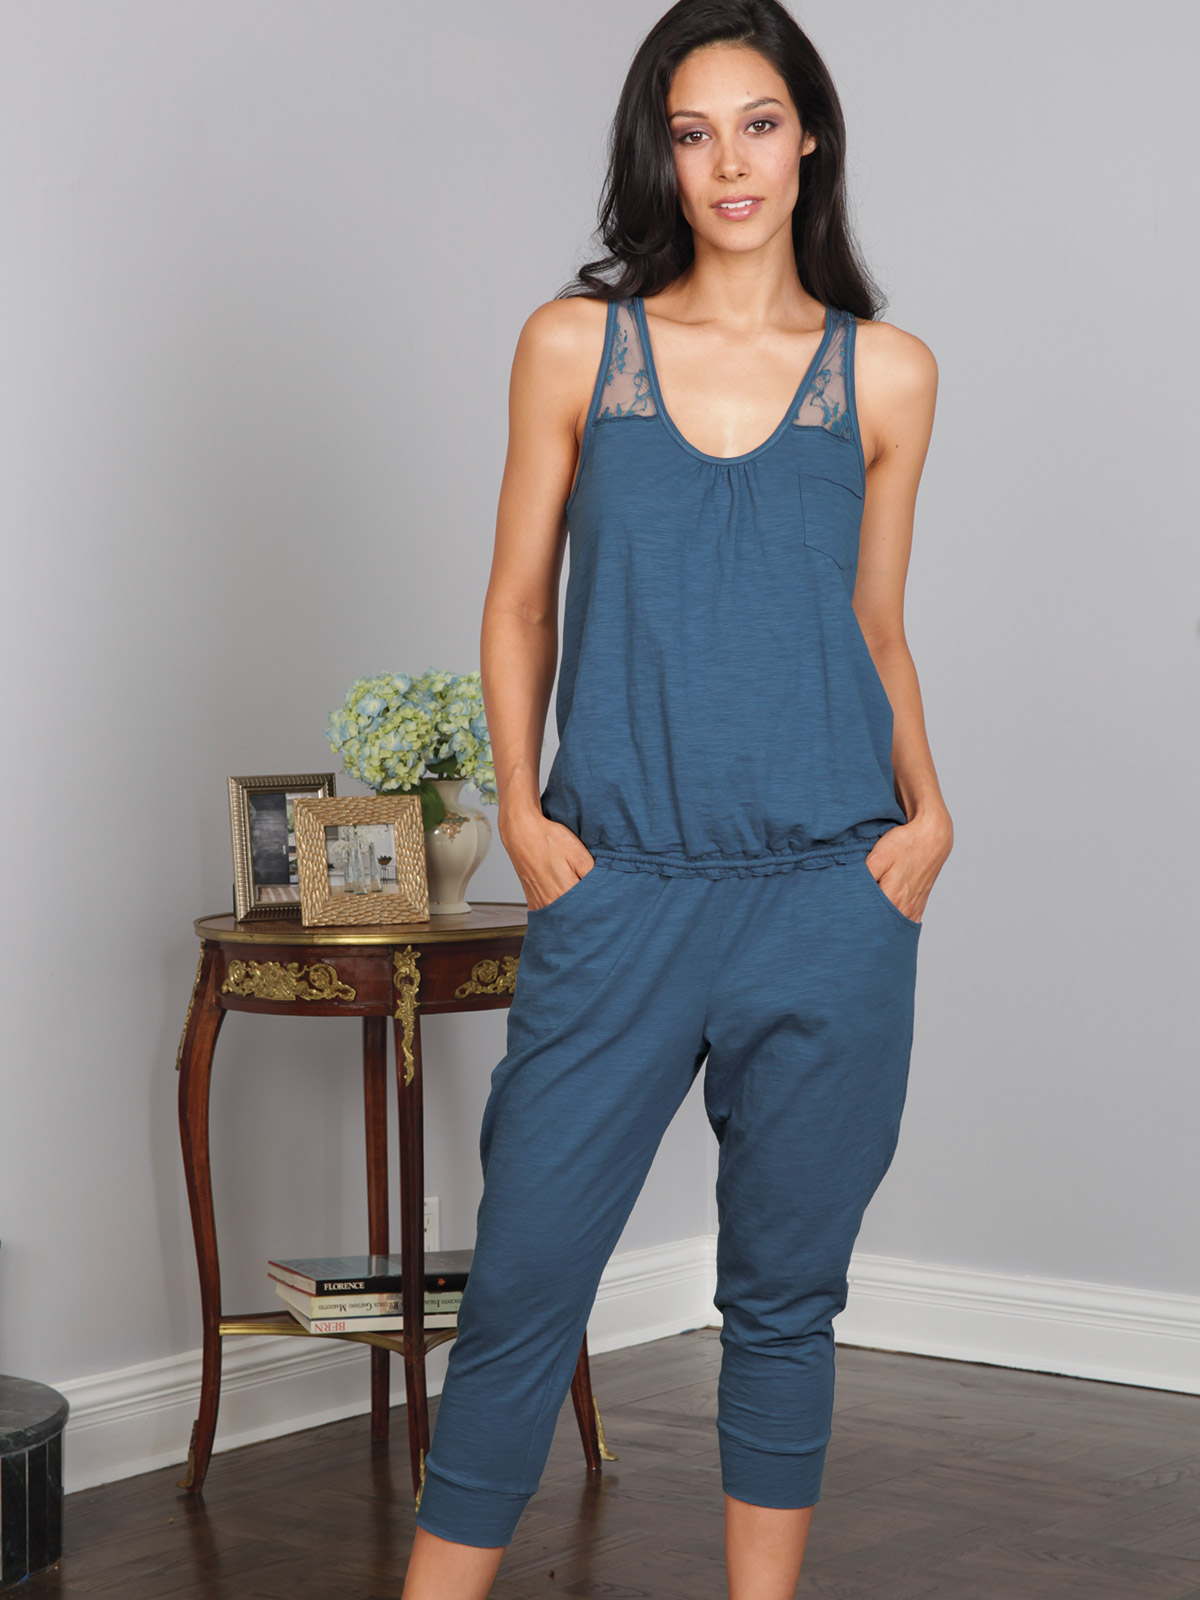 Faith_LoungeWear_3460.jpg